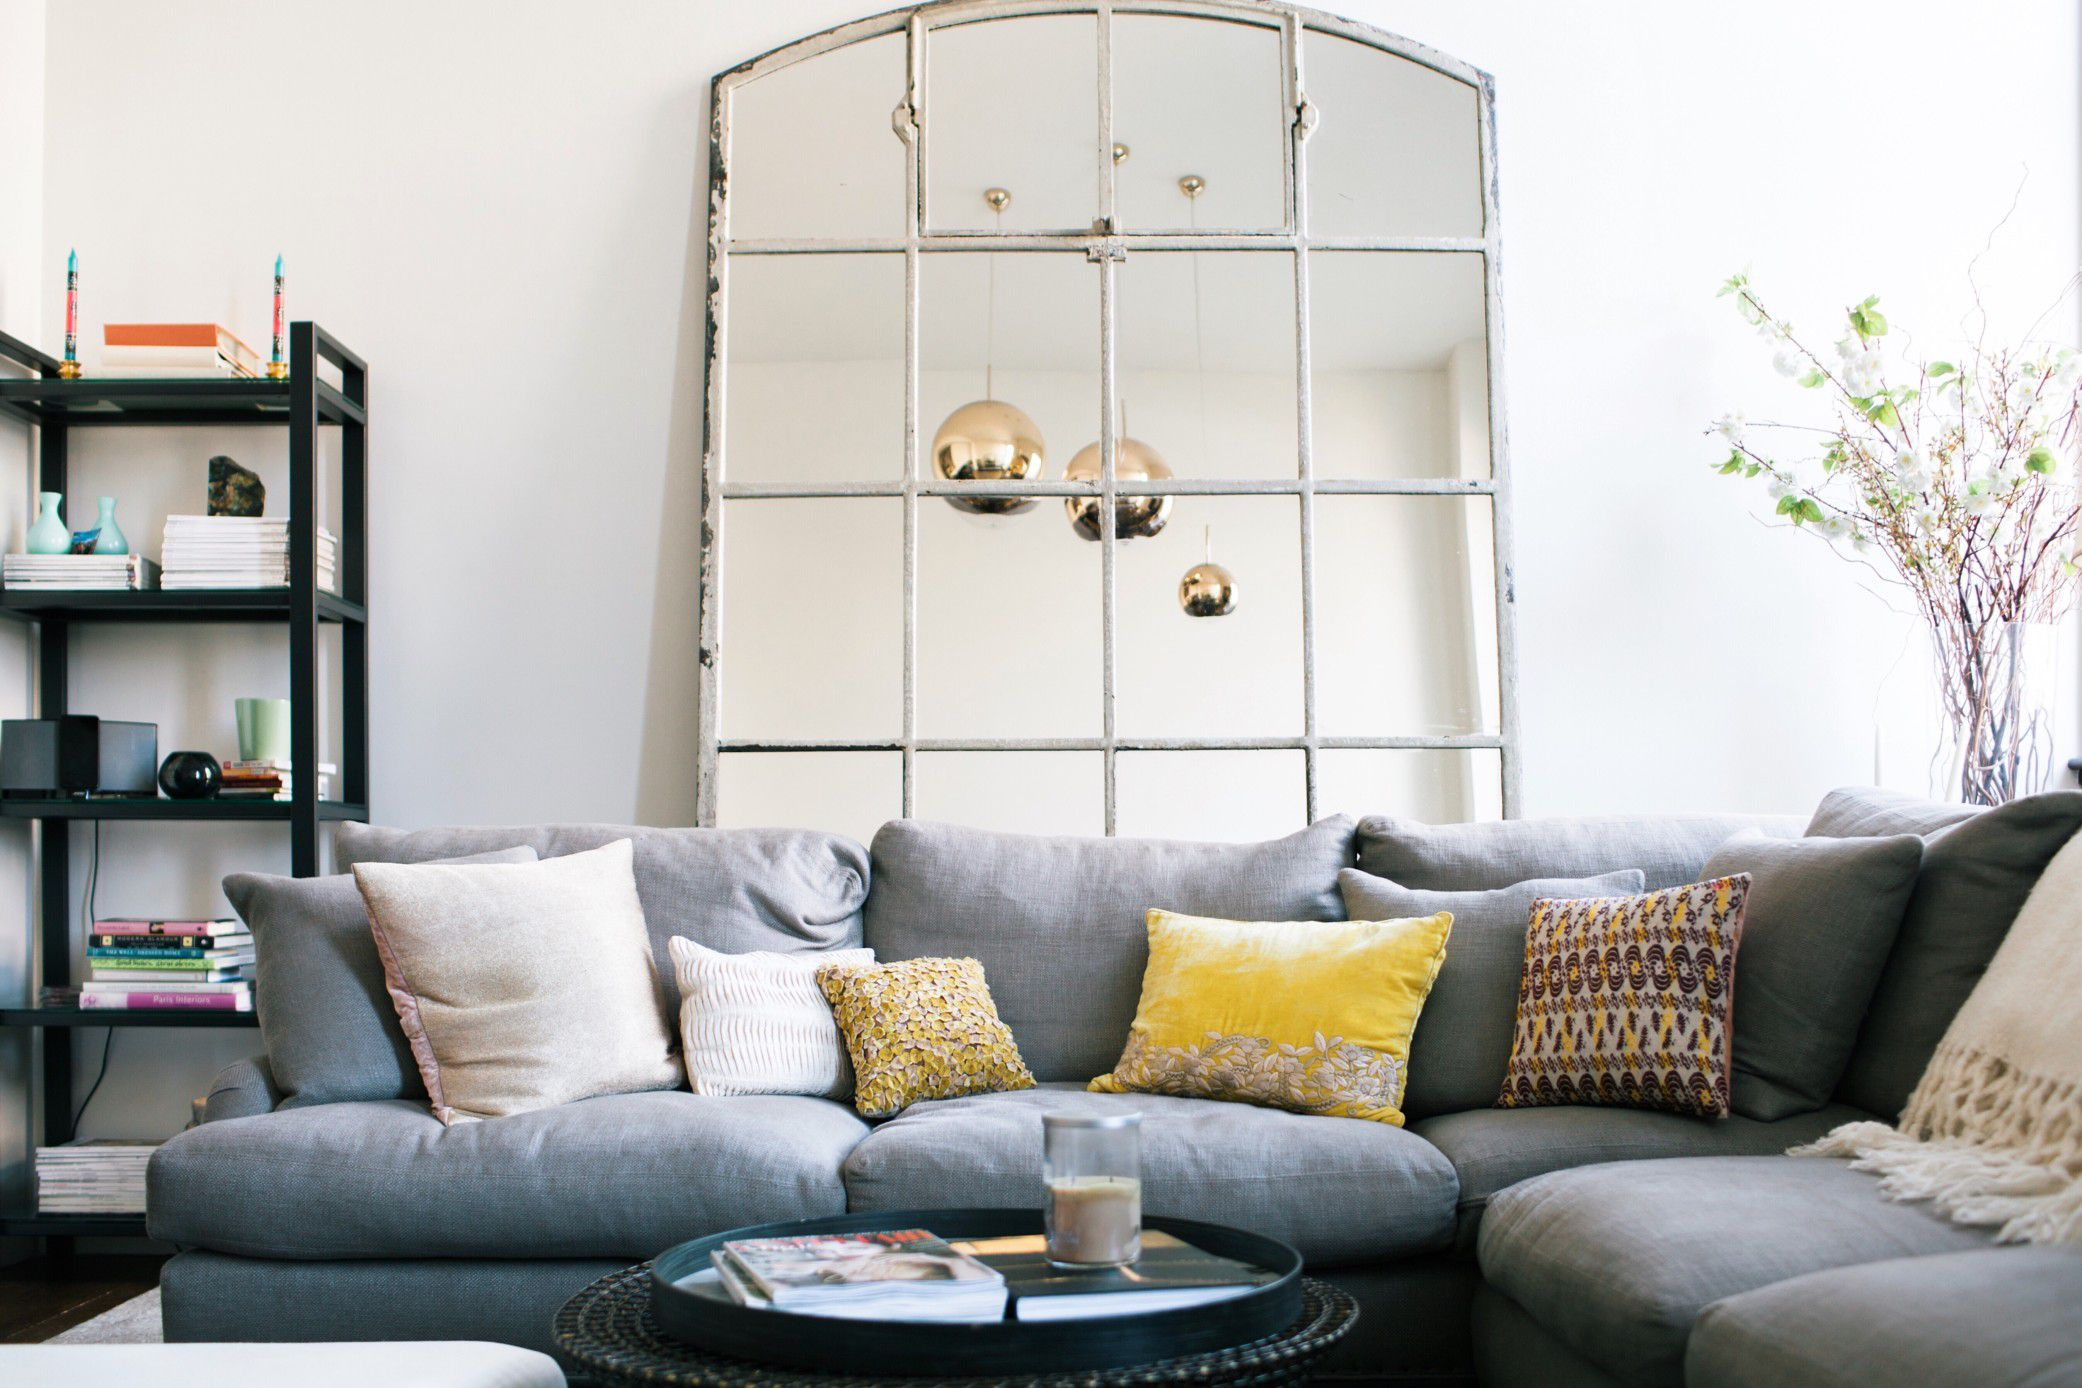 10 living room updates for under 100